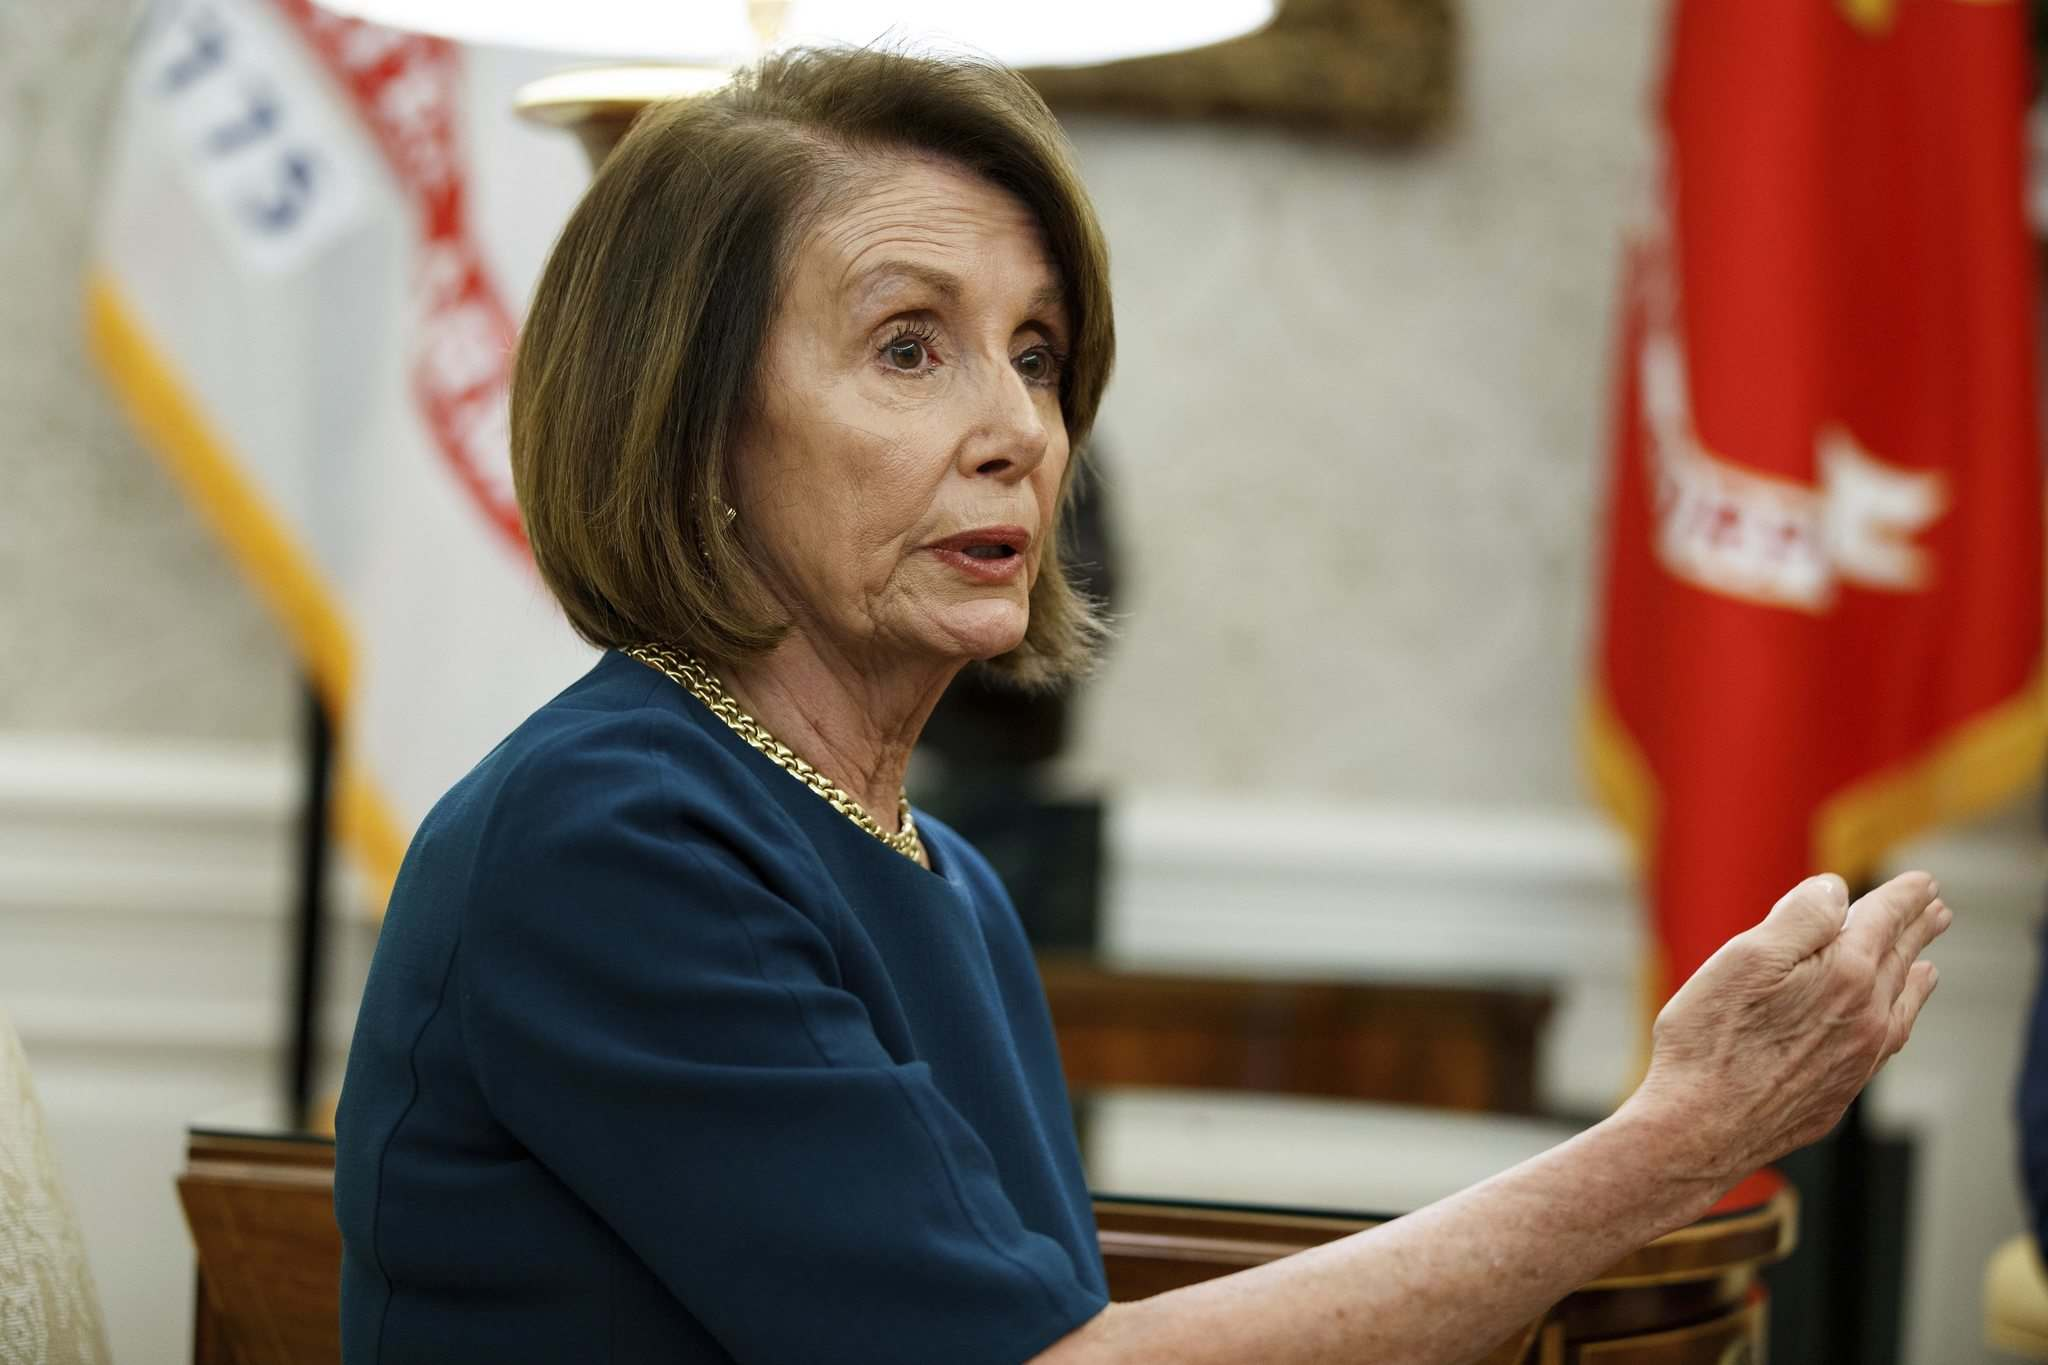 Democratic House Minority Leader Nancy Pelosi. (Evan Vucci / Associated Press files)